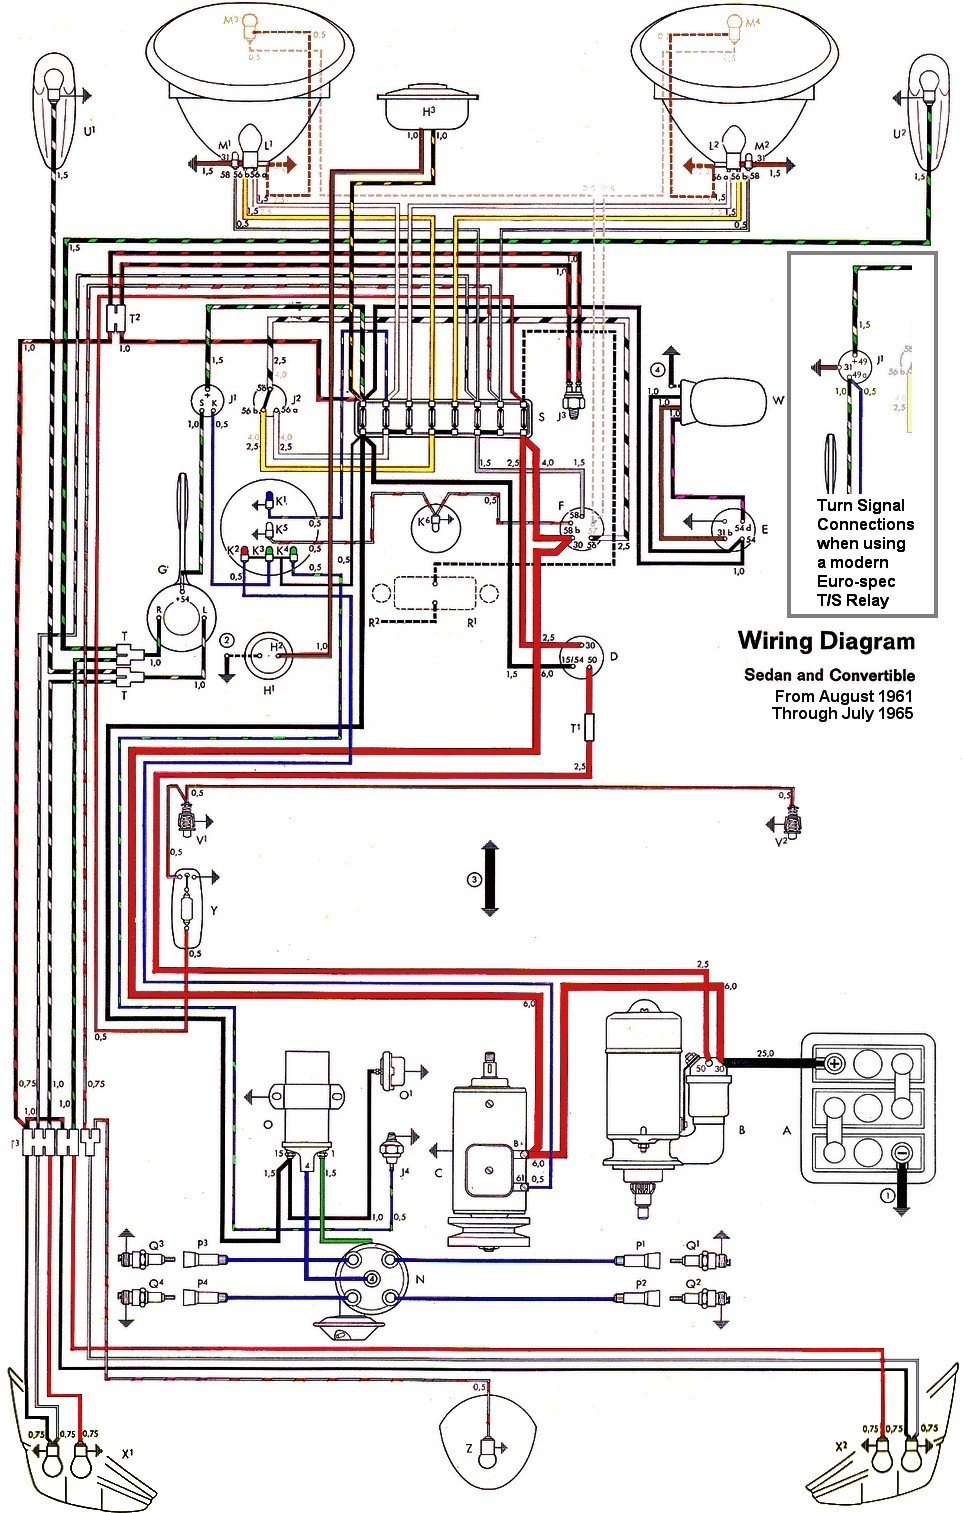 bug_62 65withinset thesamba com type 1 wiring diagrams vw beetle wiring diagram at couponss.co